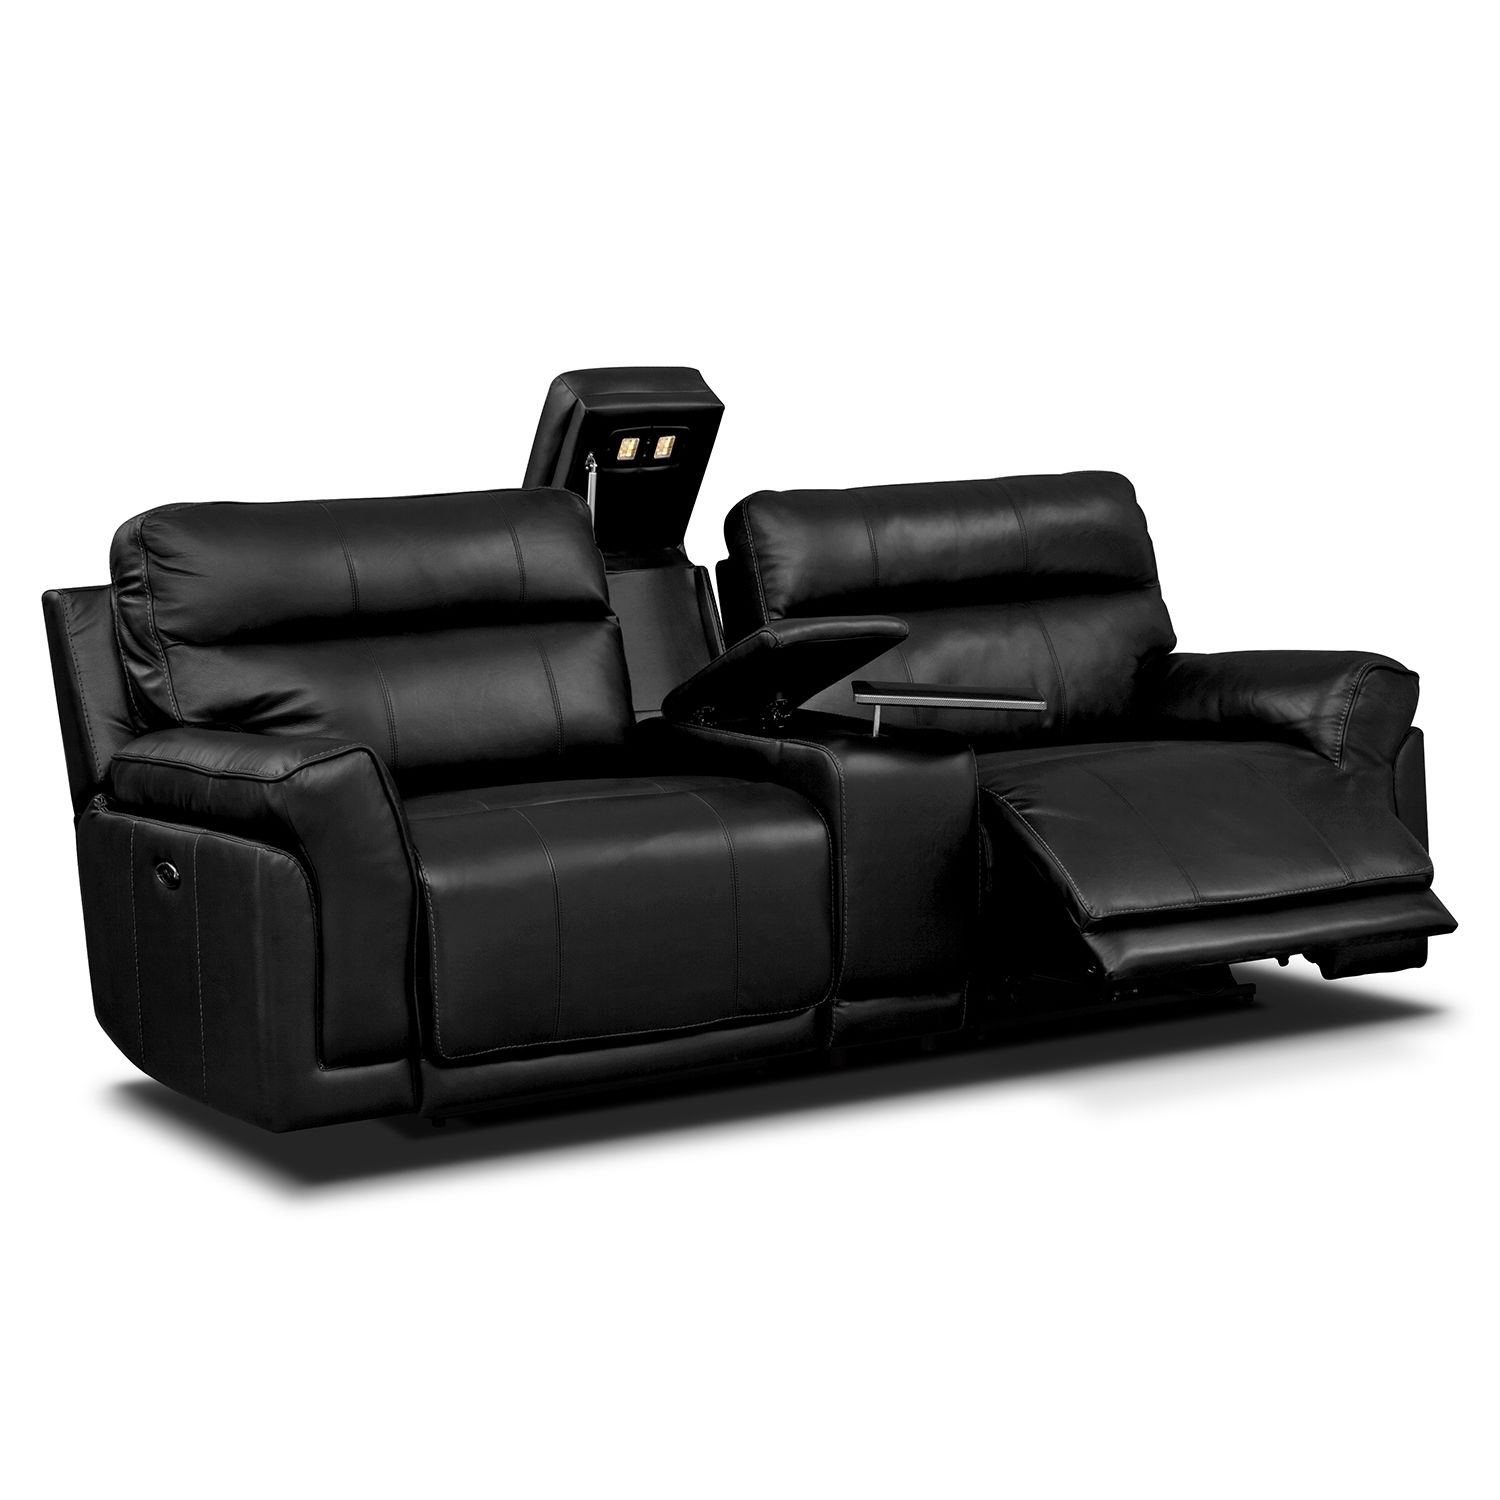 best of black leather sectional sofa photo-Fresh Black Leather Sectional sofa Portrait